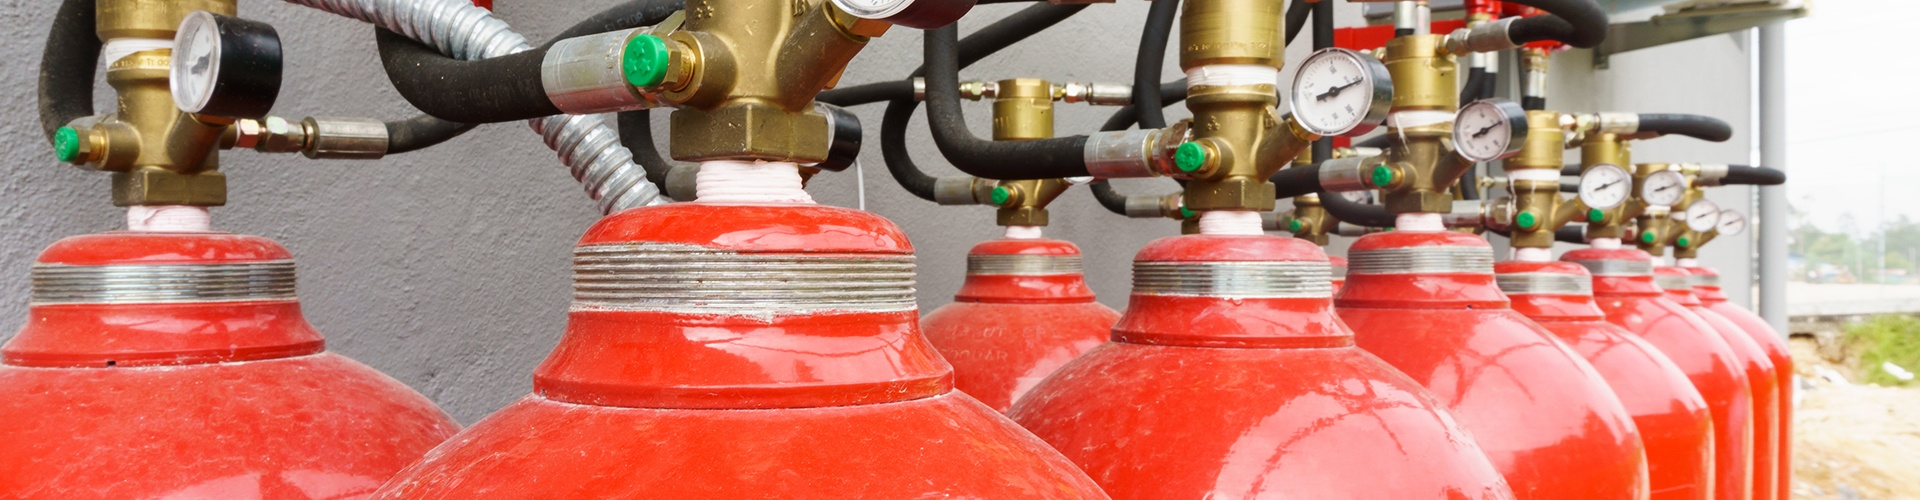 Storing Gas Cylinders Safely Minor Storage Requirements